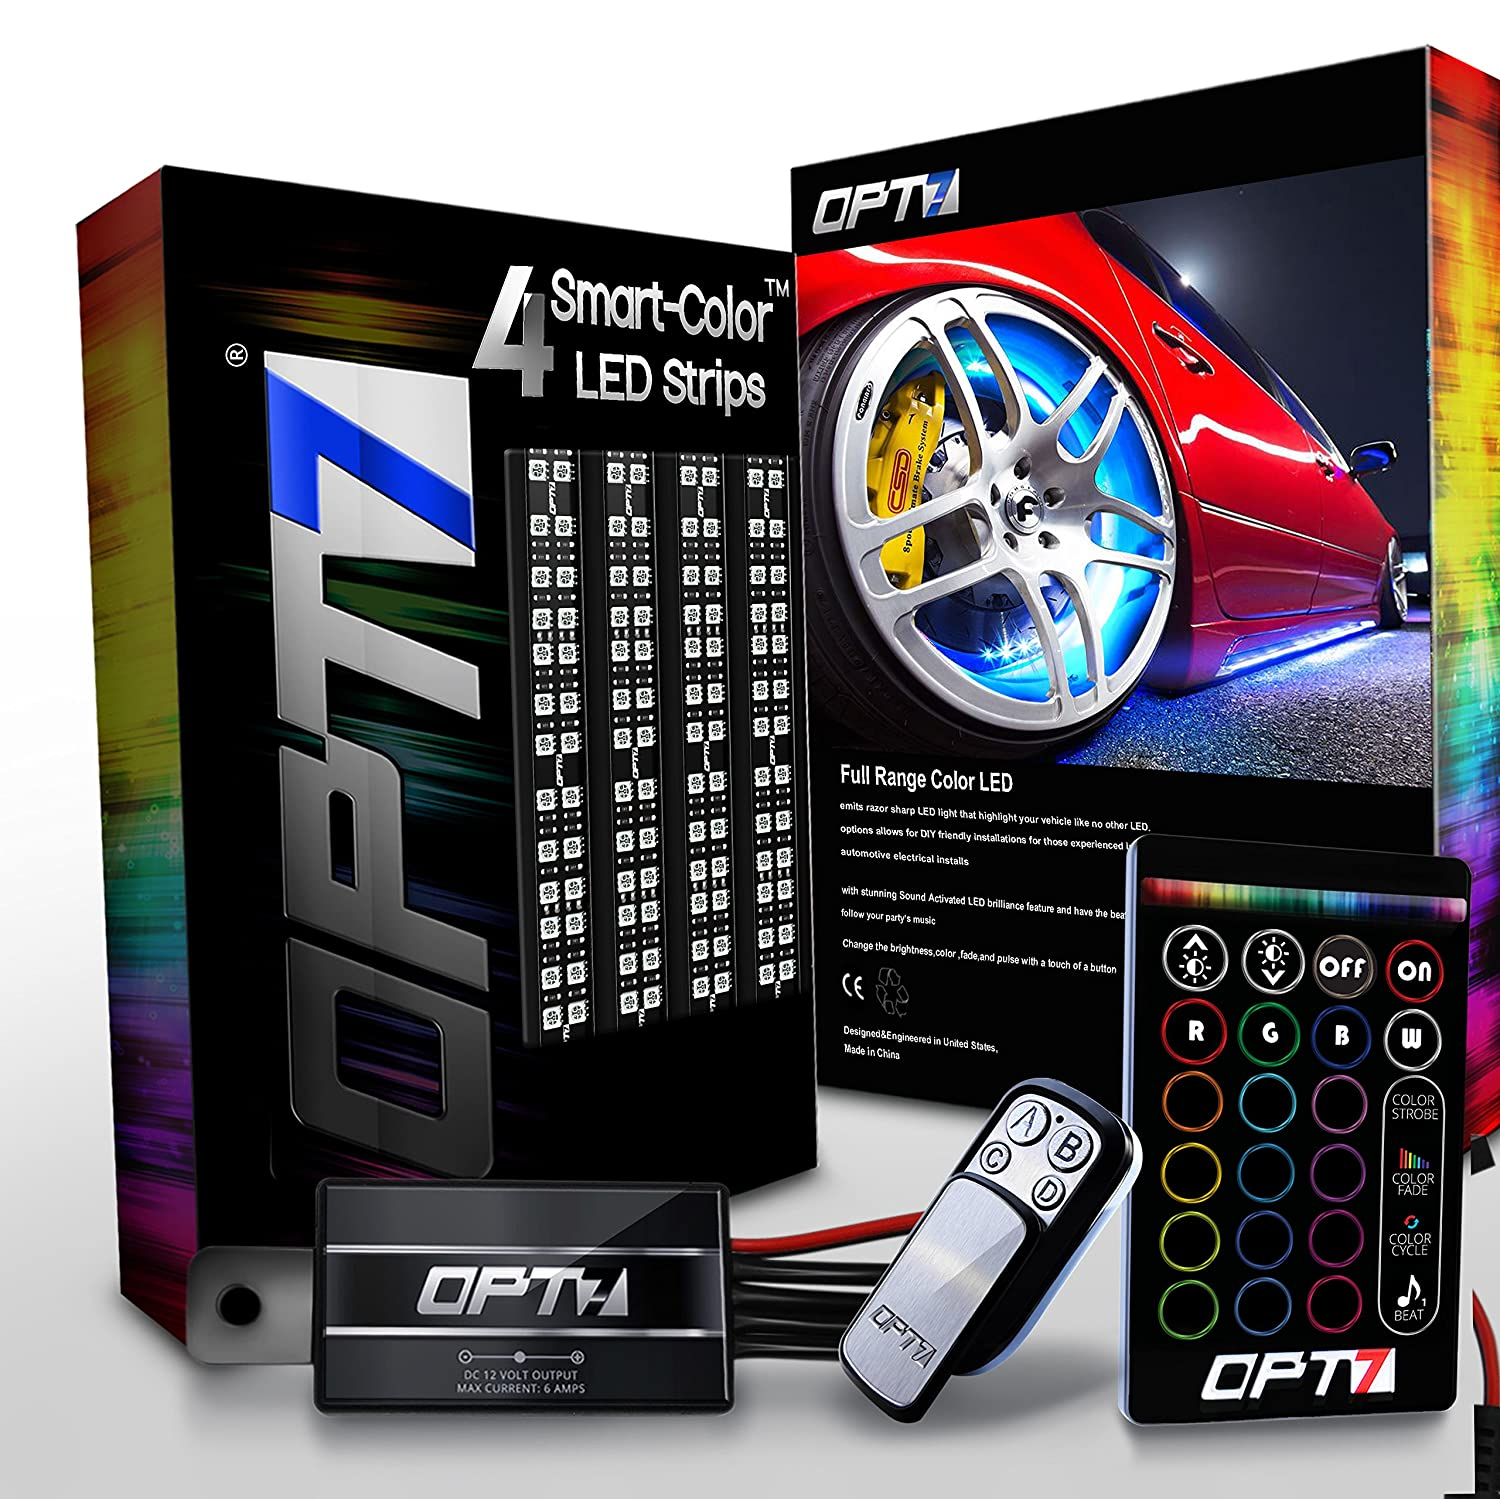 OPT7 3-Into-1 Aura Wheel Well LED Kit | 4pc Complete 24' All-Color Strips w/SoundSync